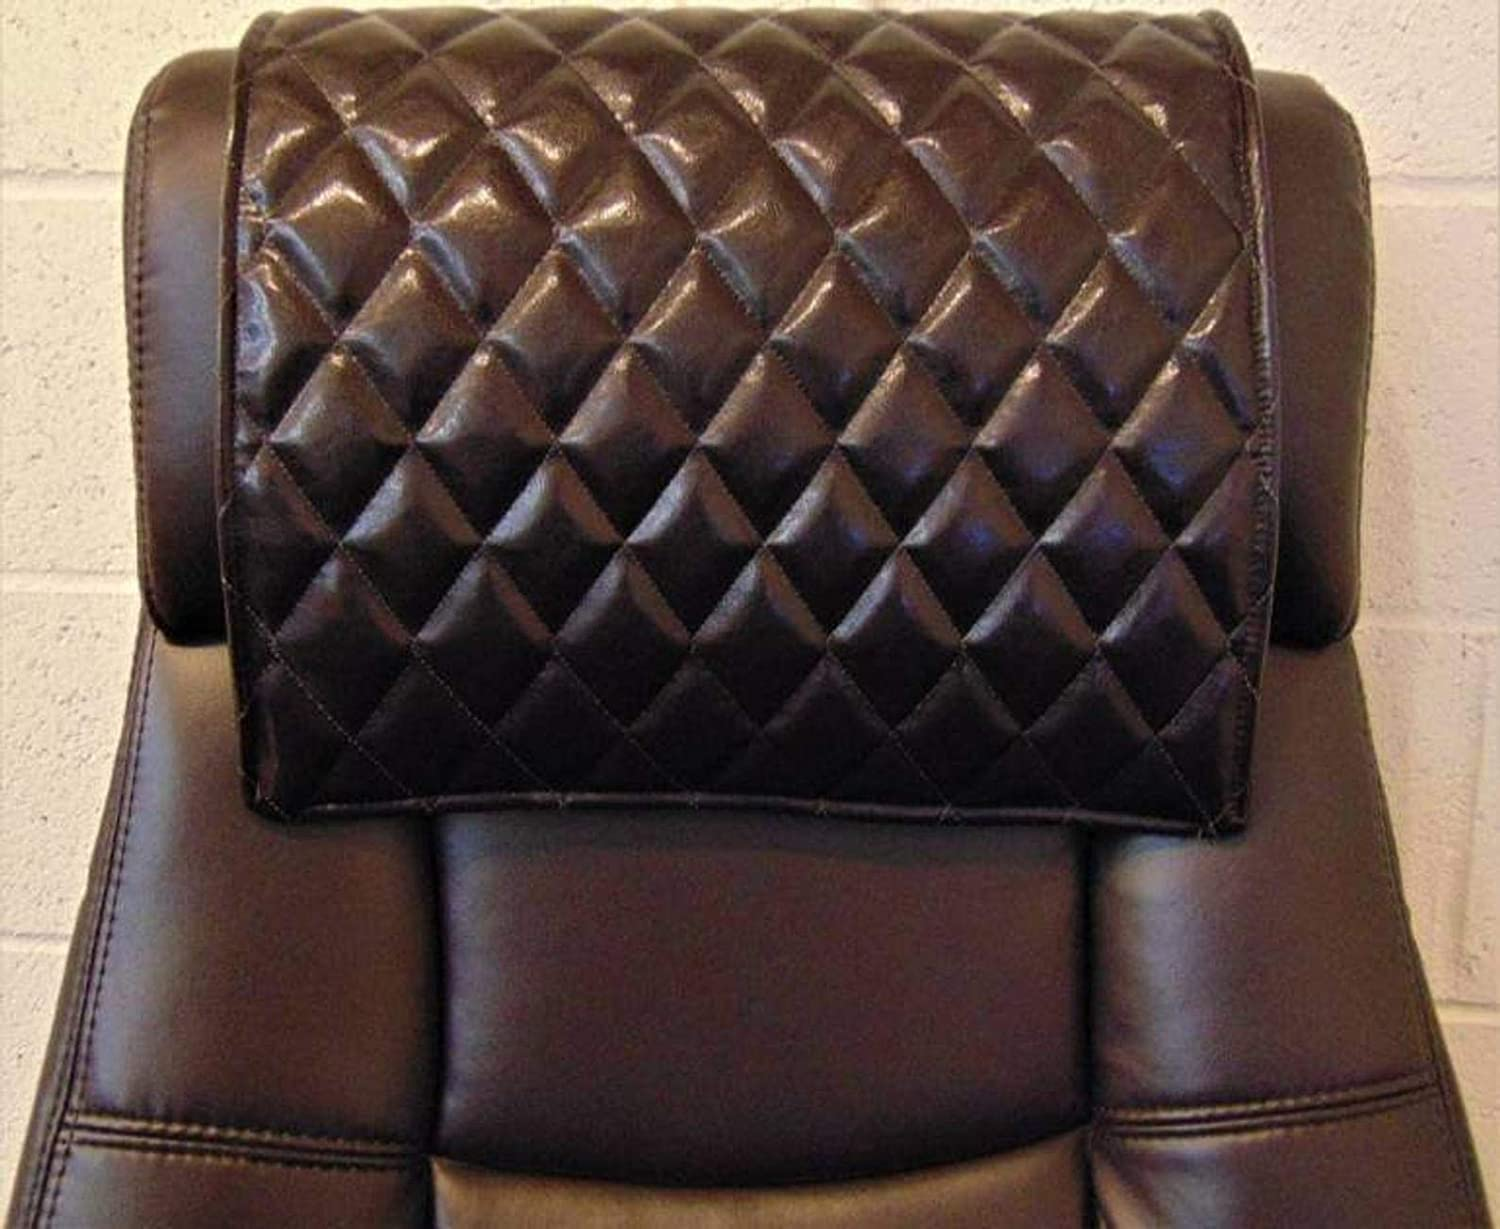 Trimbark Padded Quilted Genuine Leather, Sofa, Loveseat, Chaise, Theater Seat, RV Cover, Chair, Headrest Pad, Recliner Head Cover, Protector Brown 14X26 Set of 1